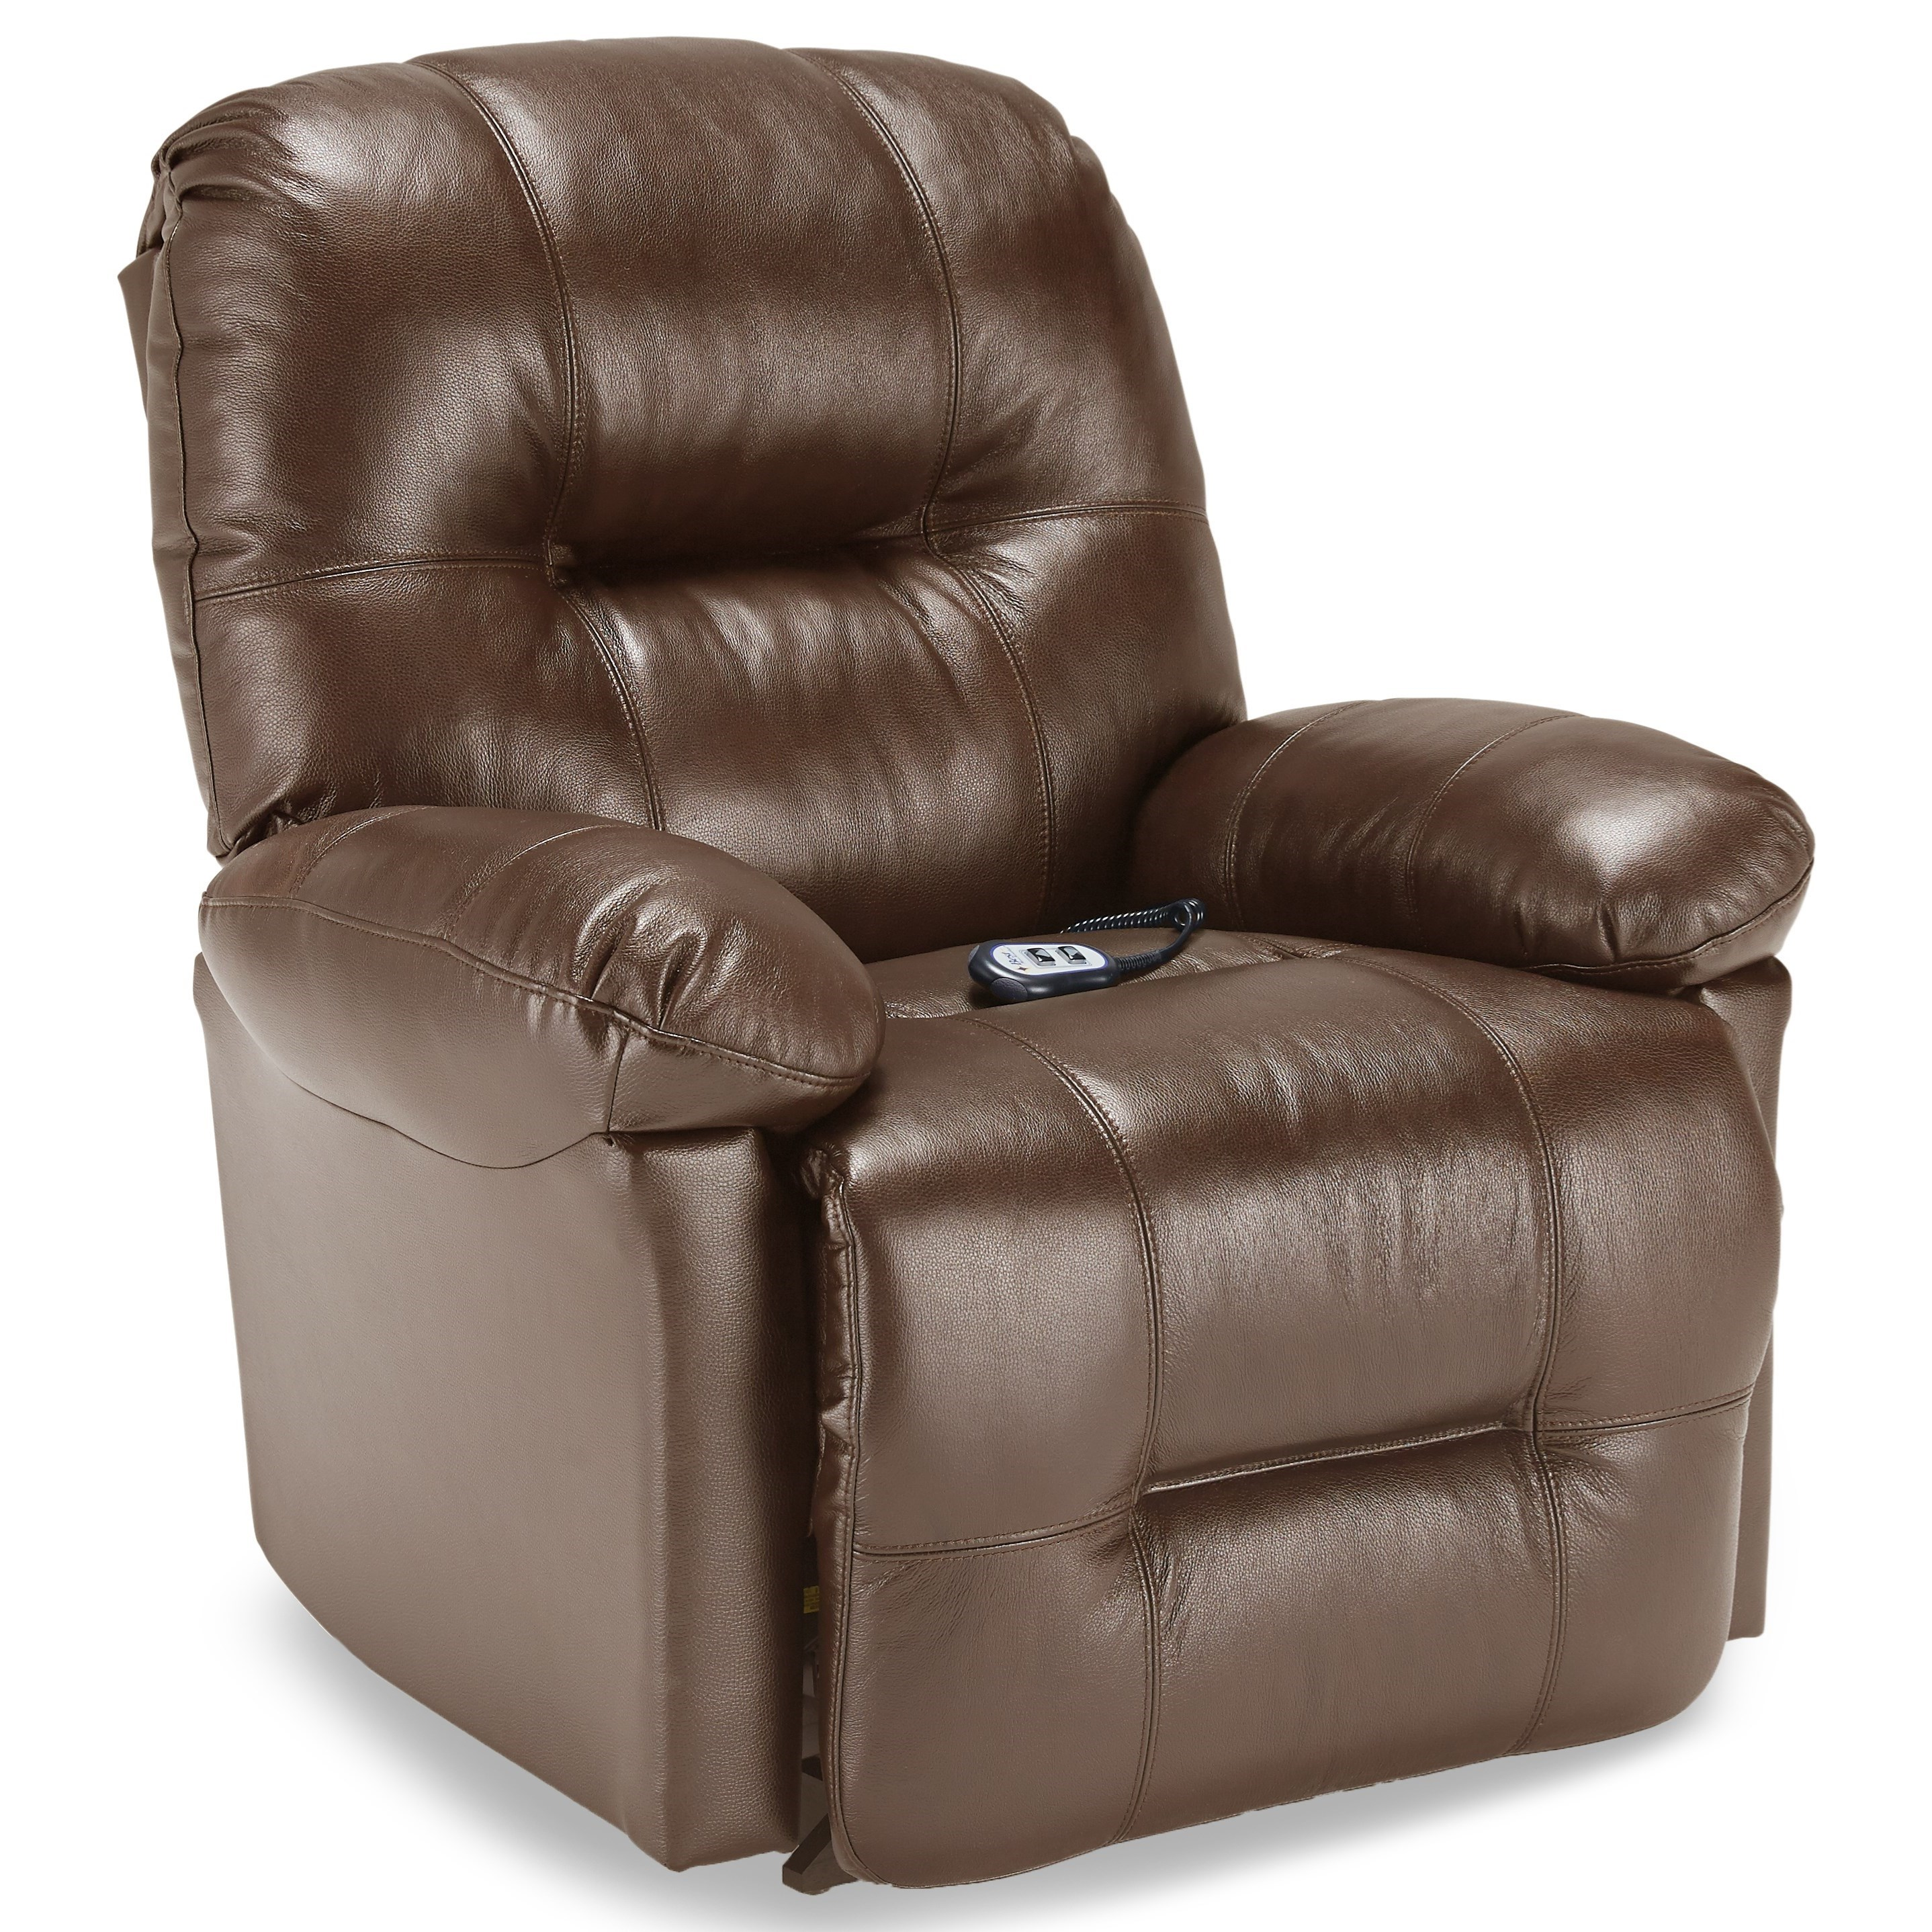 S501 Zaynah Power Rocker Recliner by Best Home Furnishings at Baer's Furniture